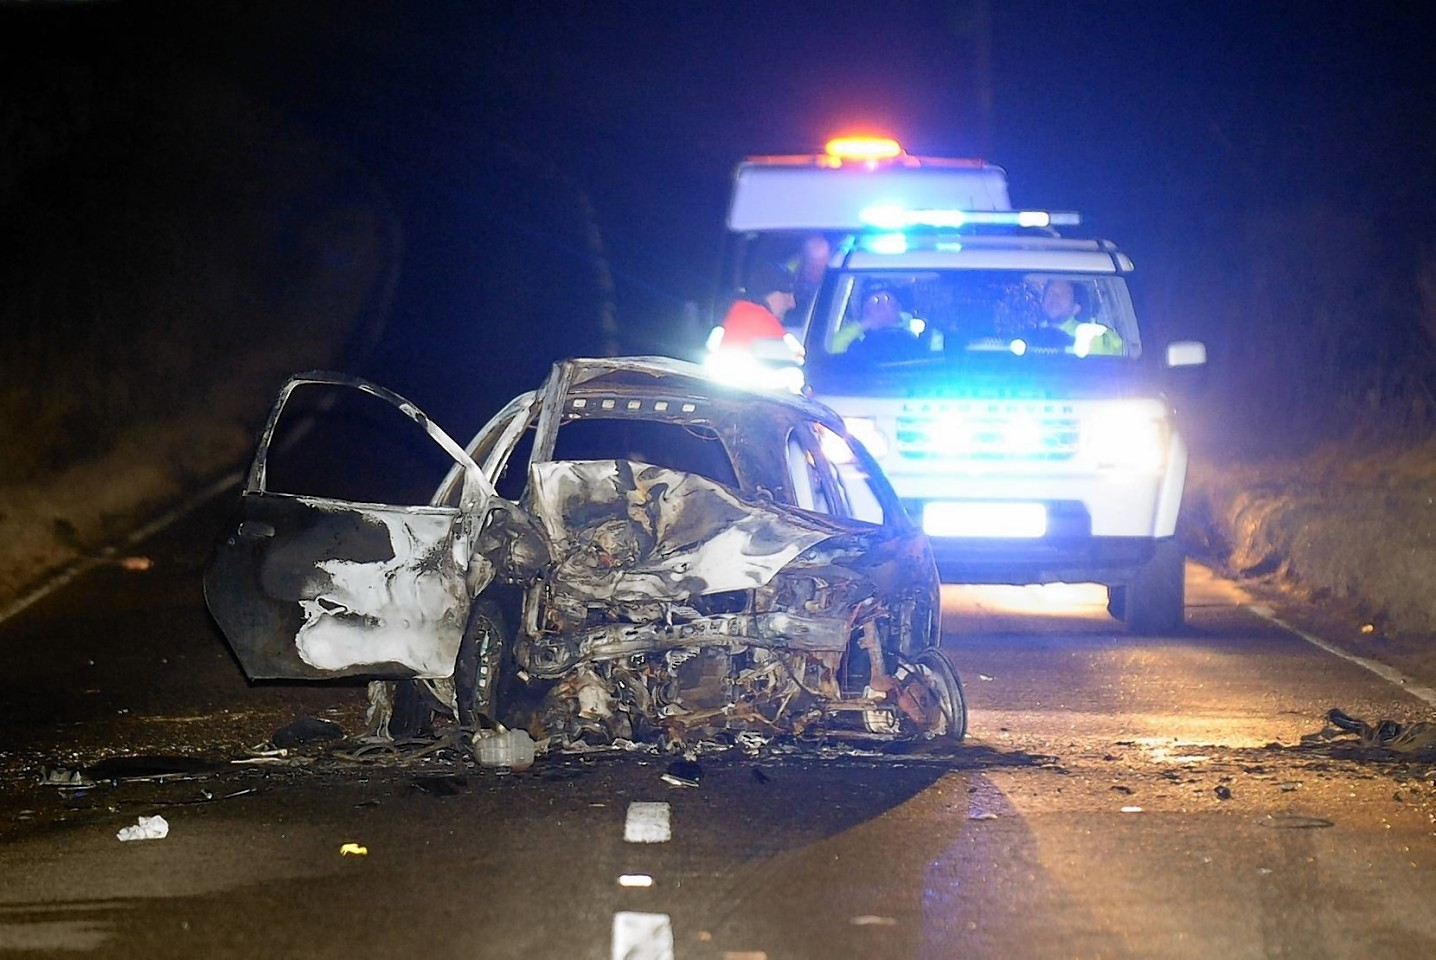 The scene of the crash on the South Deeside Road last night